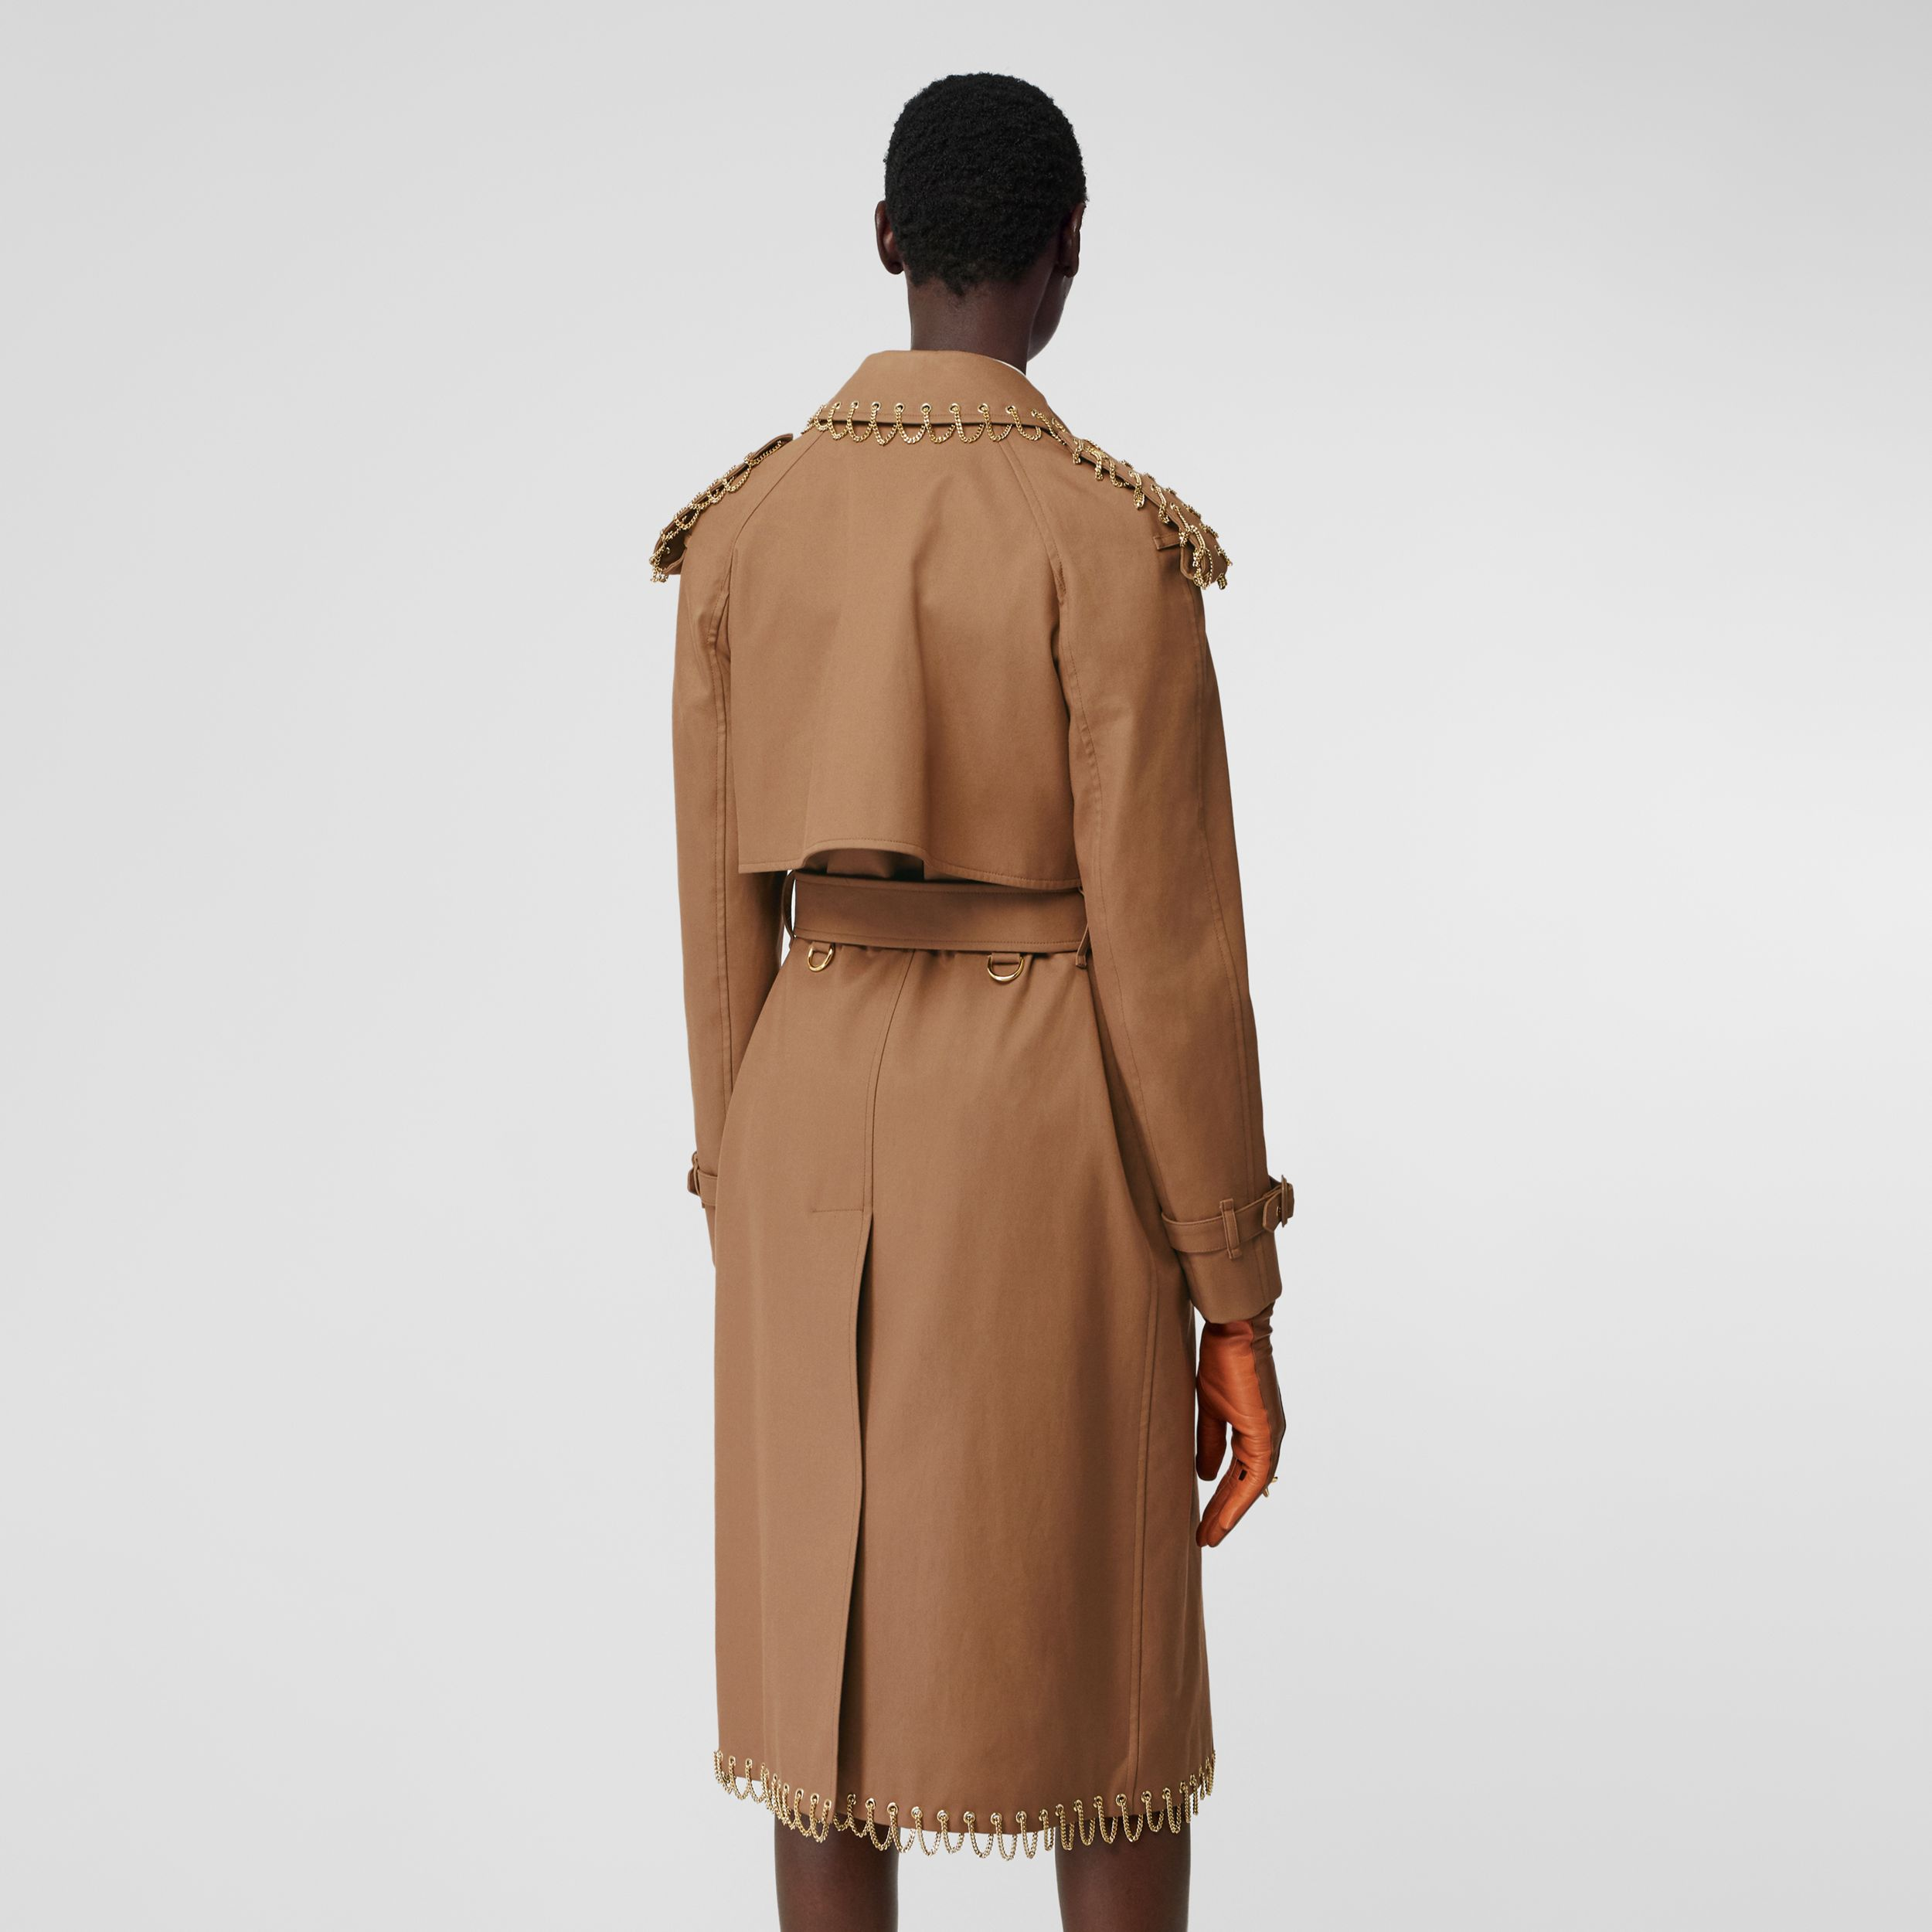 Chain Detail Cotton Gabardine Trench Coat in Warm Walnut - Women | Burberry - 3